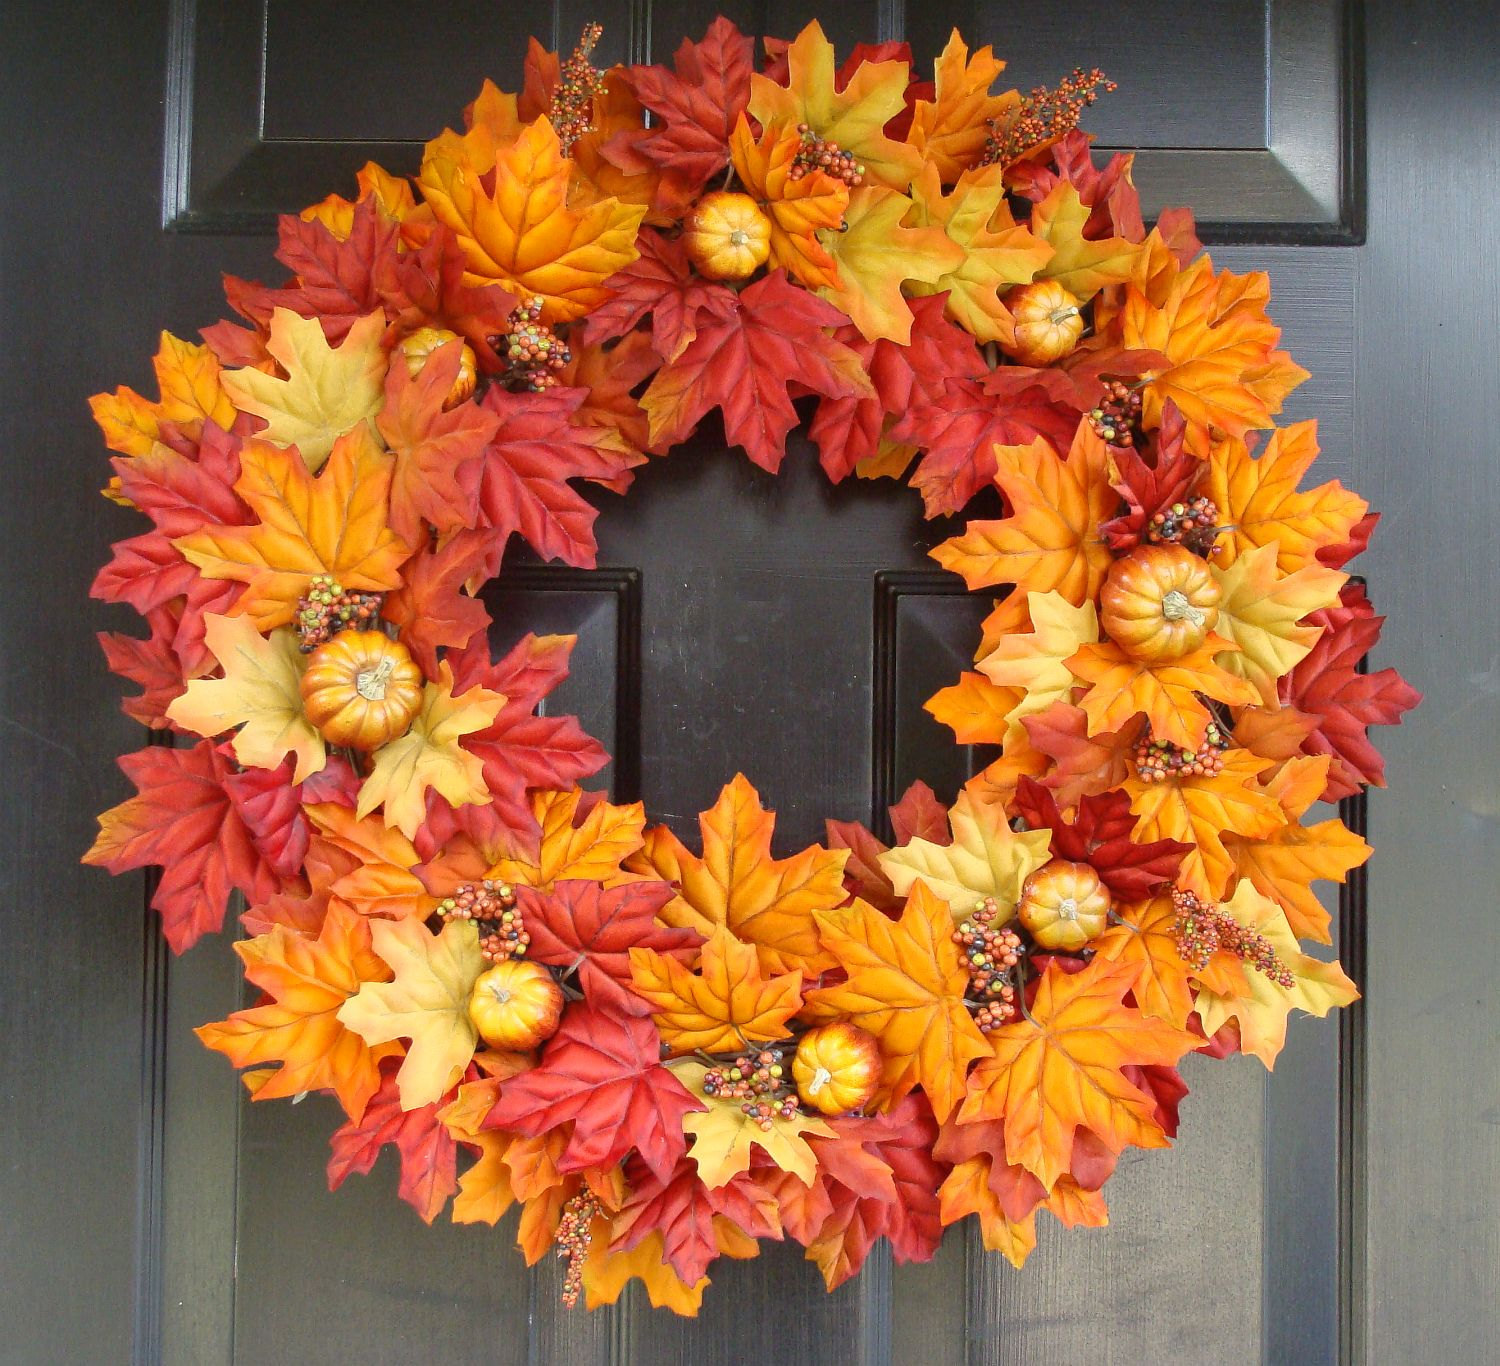 Autumn wreaths autumn weddings pics Fall autumn door wreaths